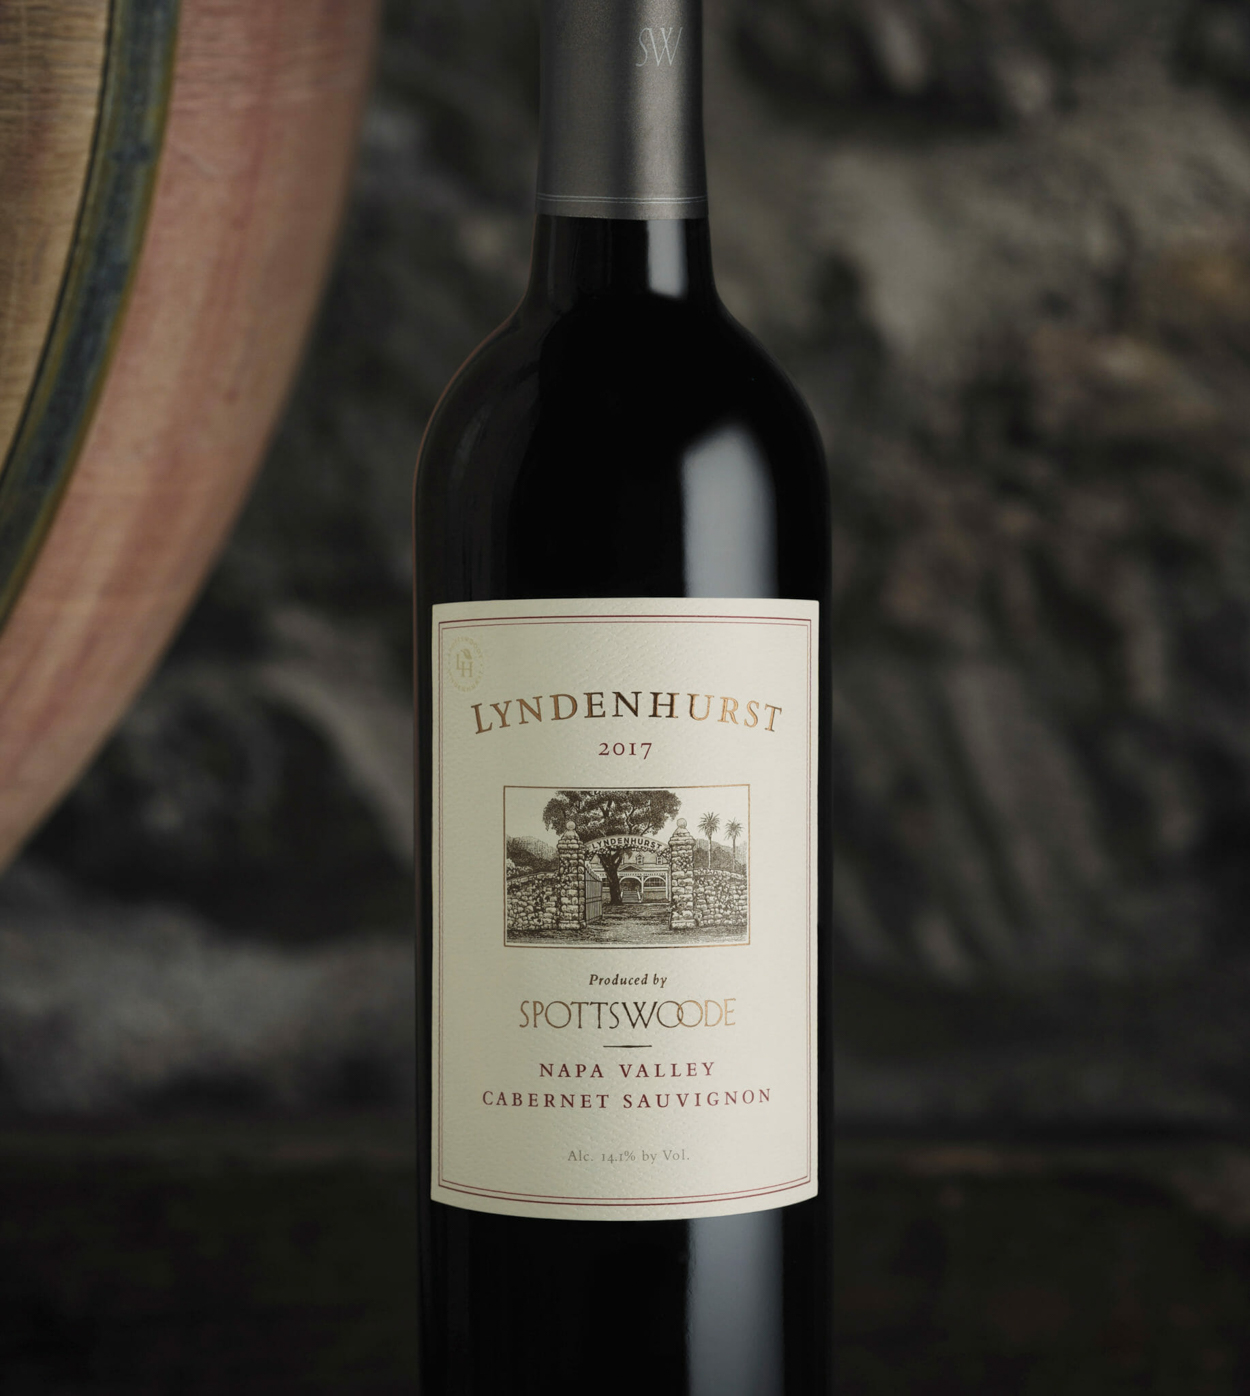 Summer Chilled Red Wine | Lyndenhurst Spottswoode Cabernet Sauvignon